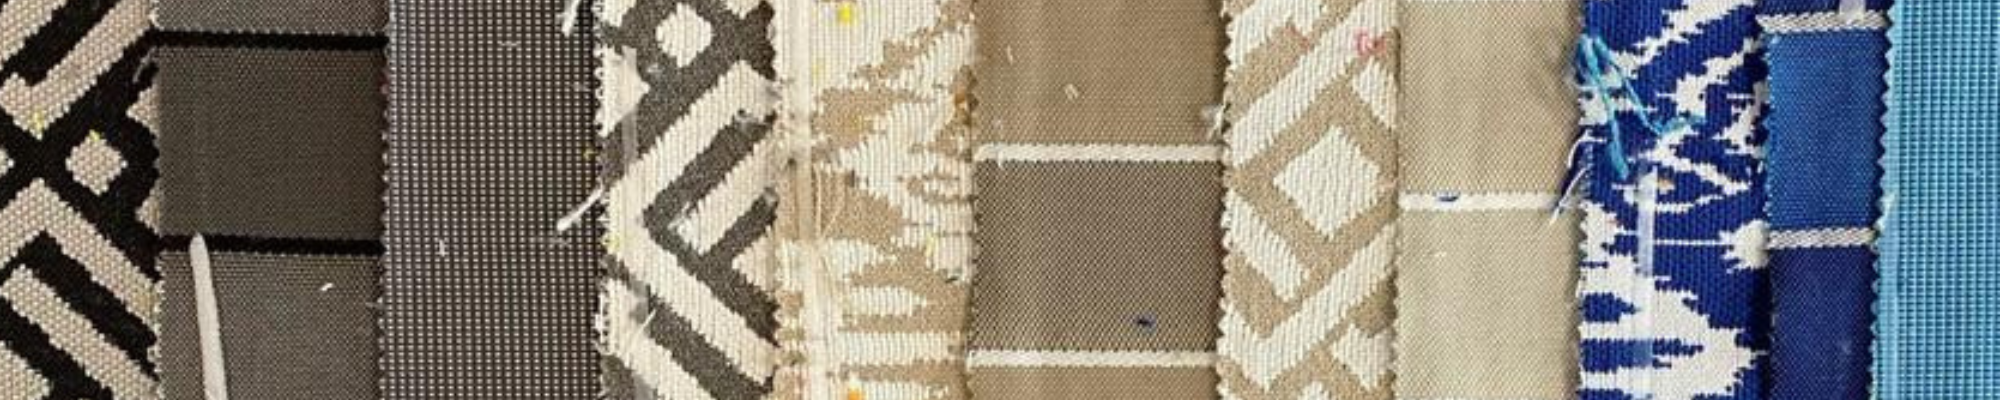 Weatherproof fabric samples for made-to-measure outdoor cushions